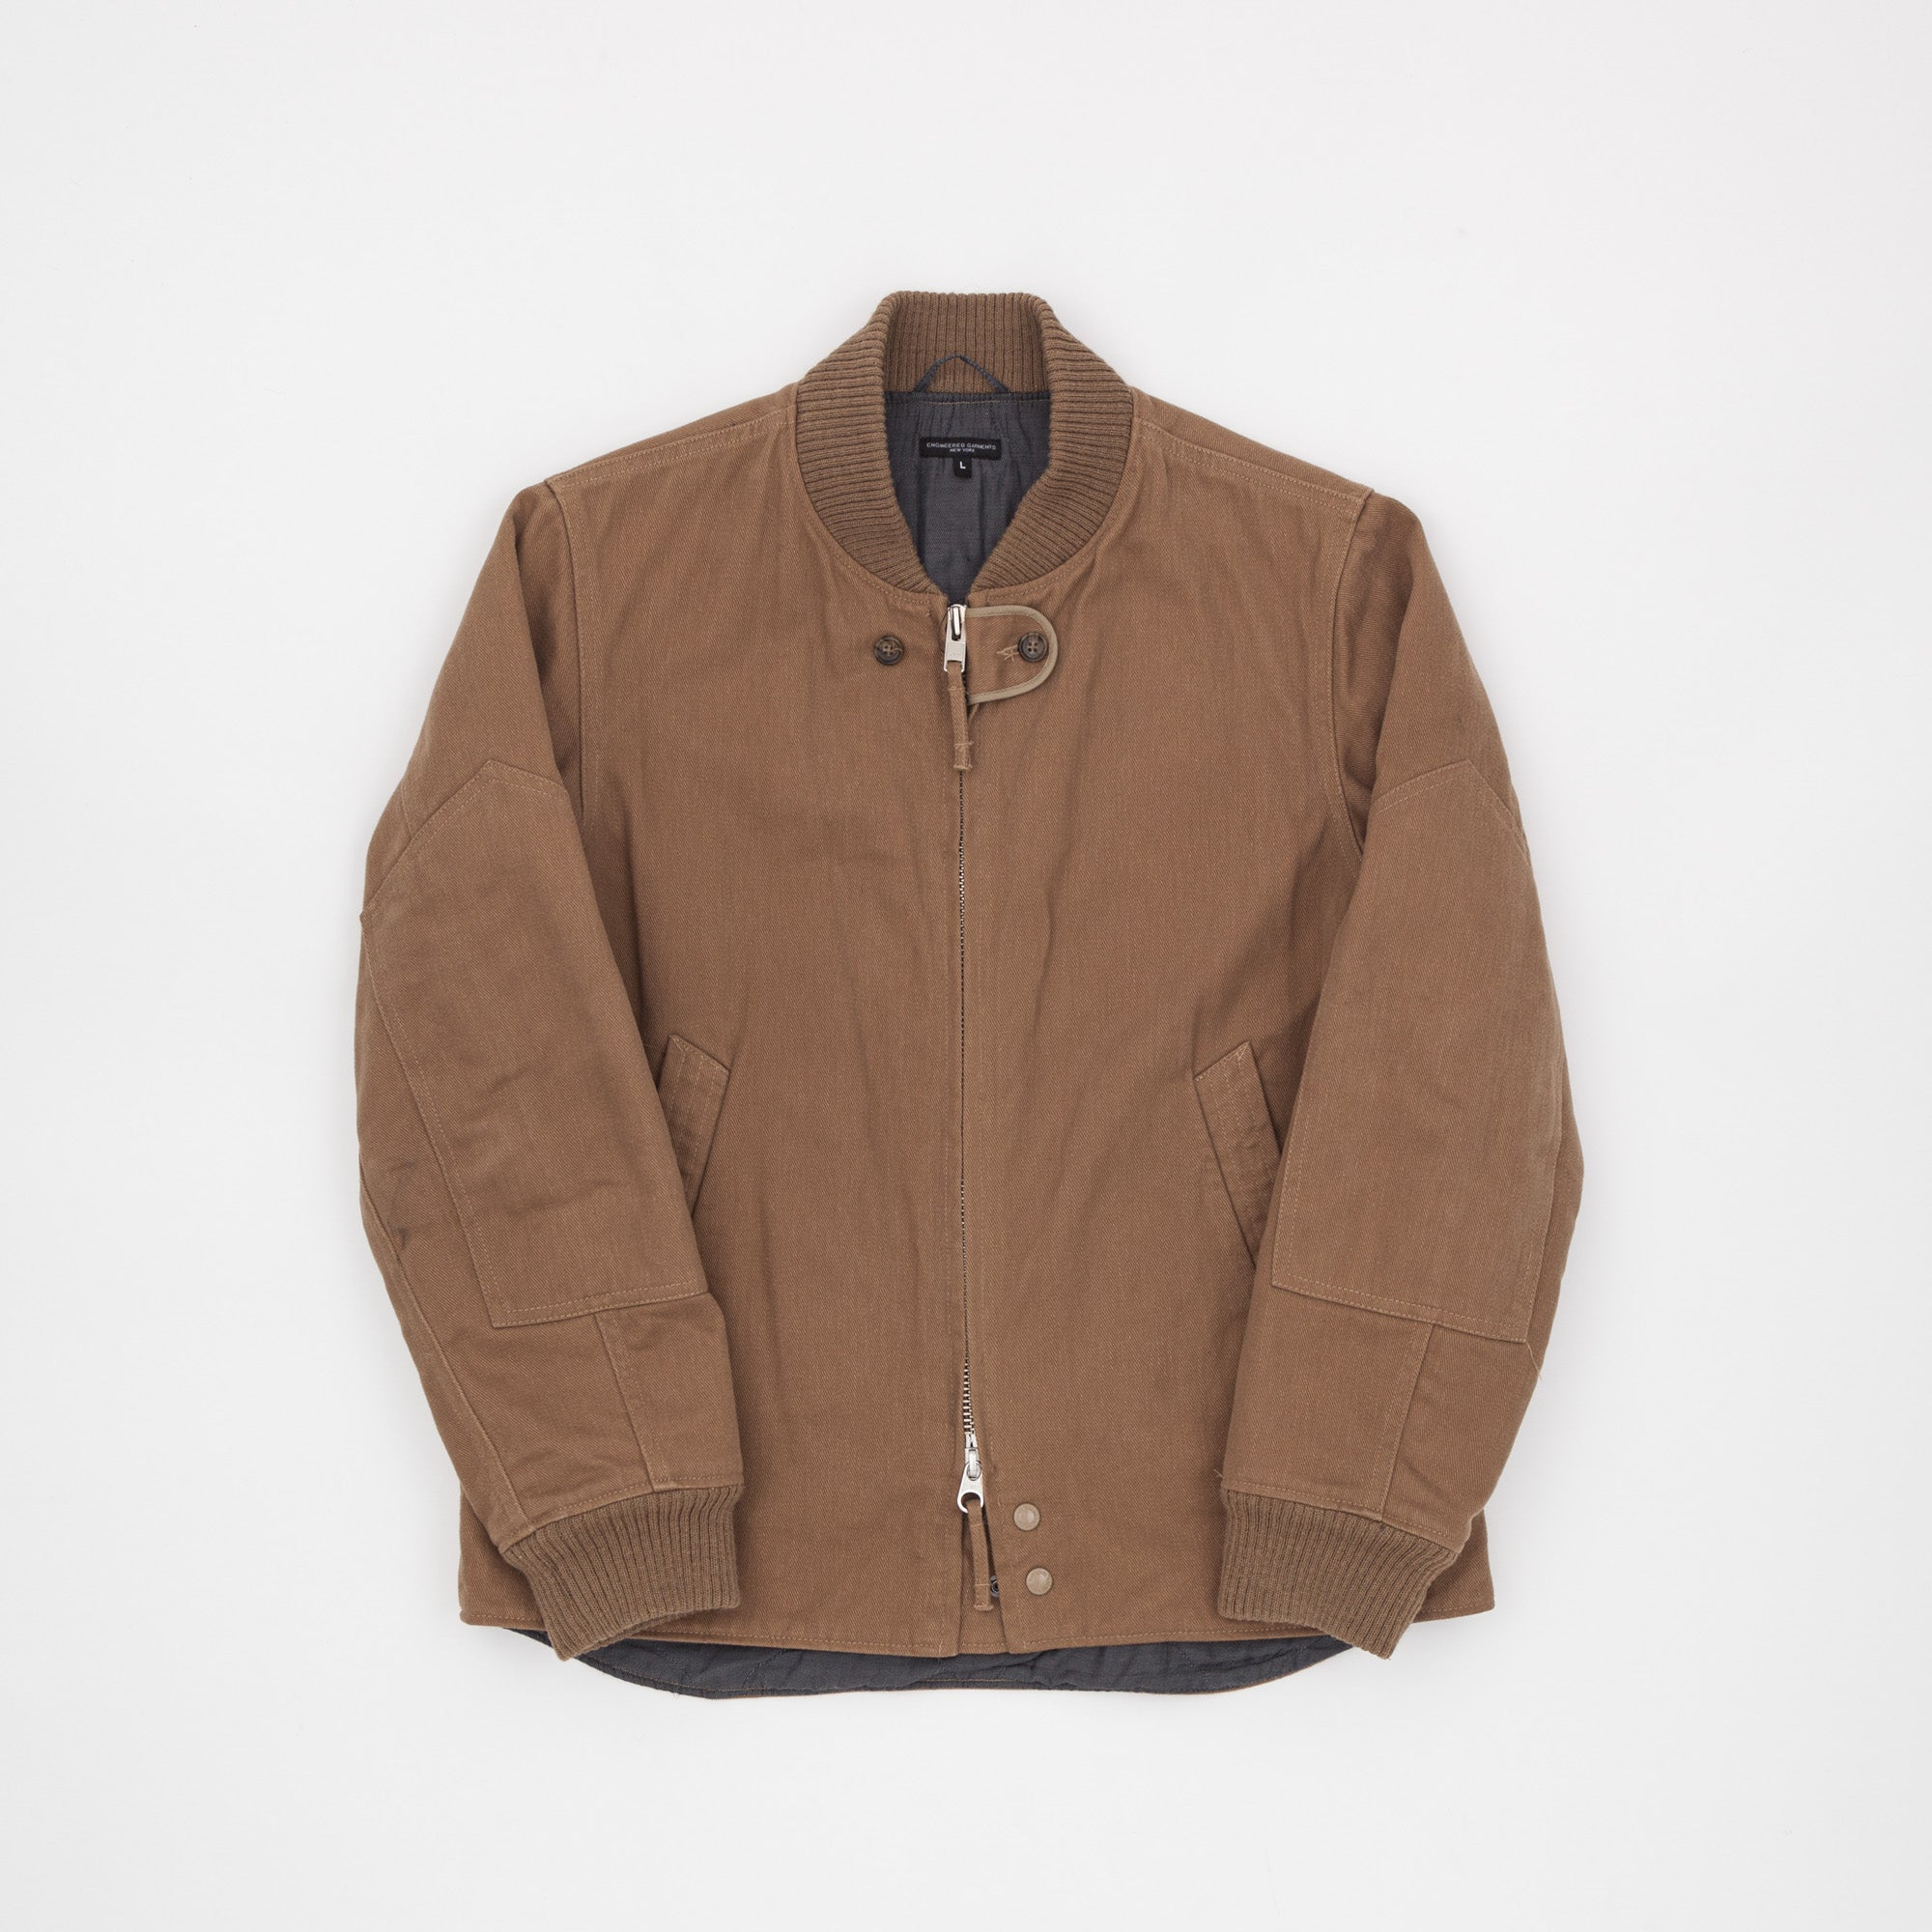 Engineered Garments Heavy Twill Tanker Jacket